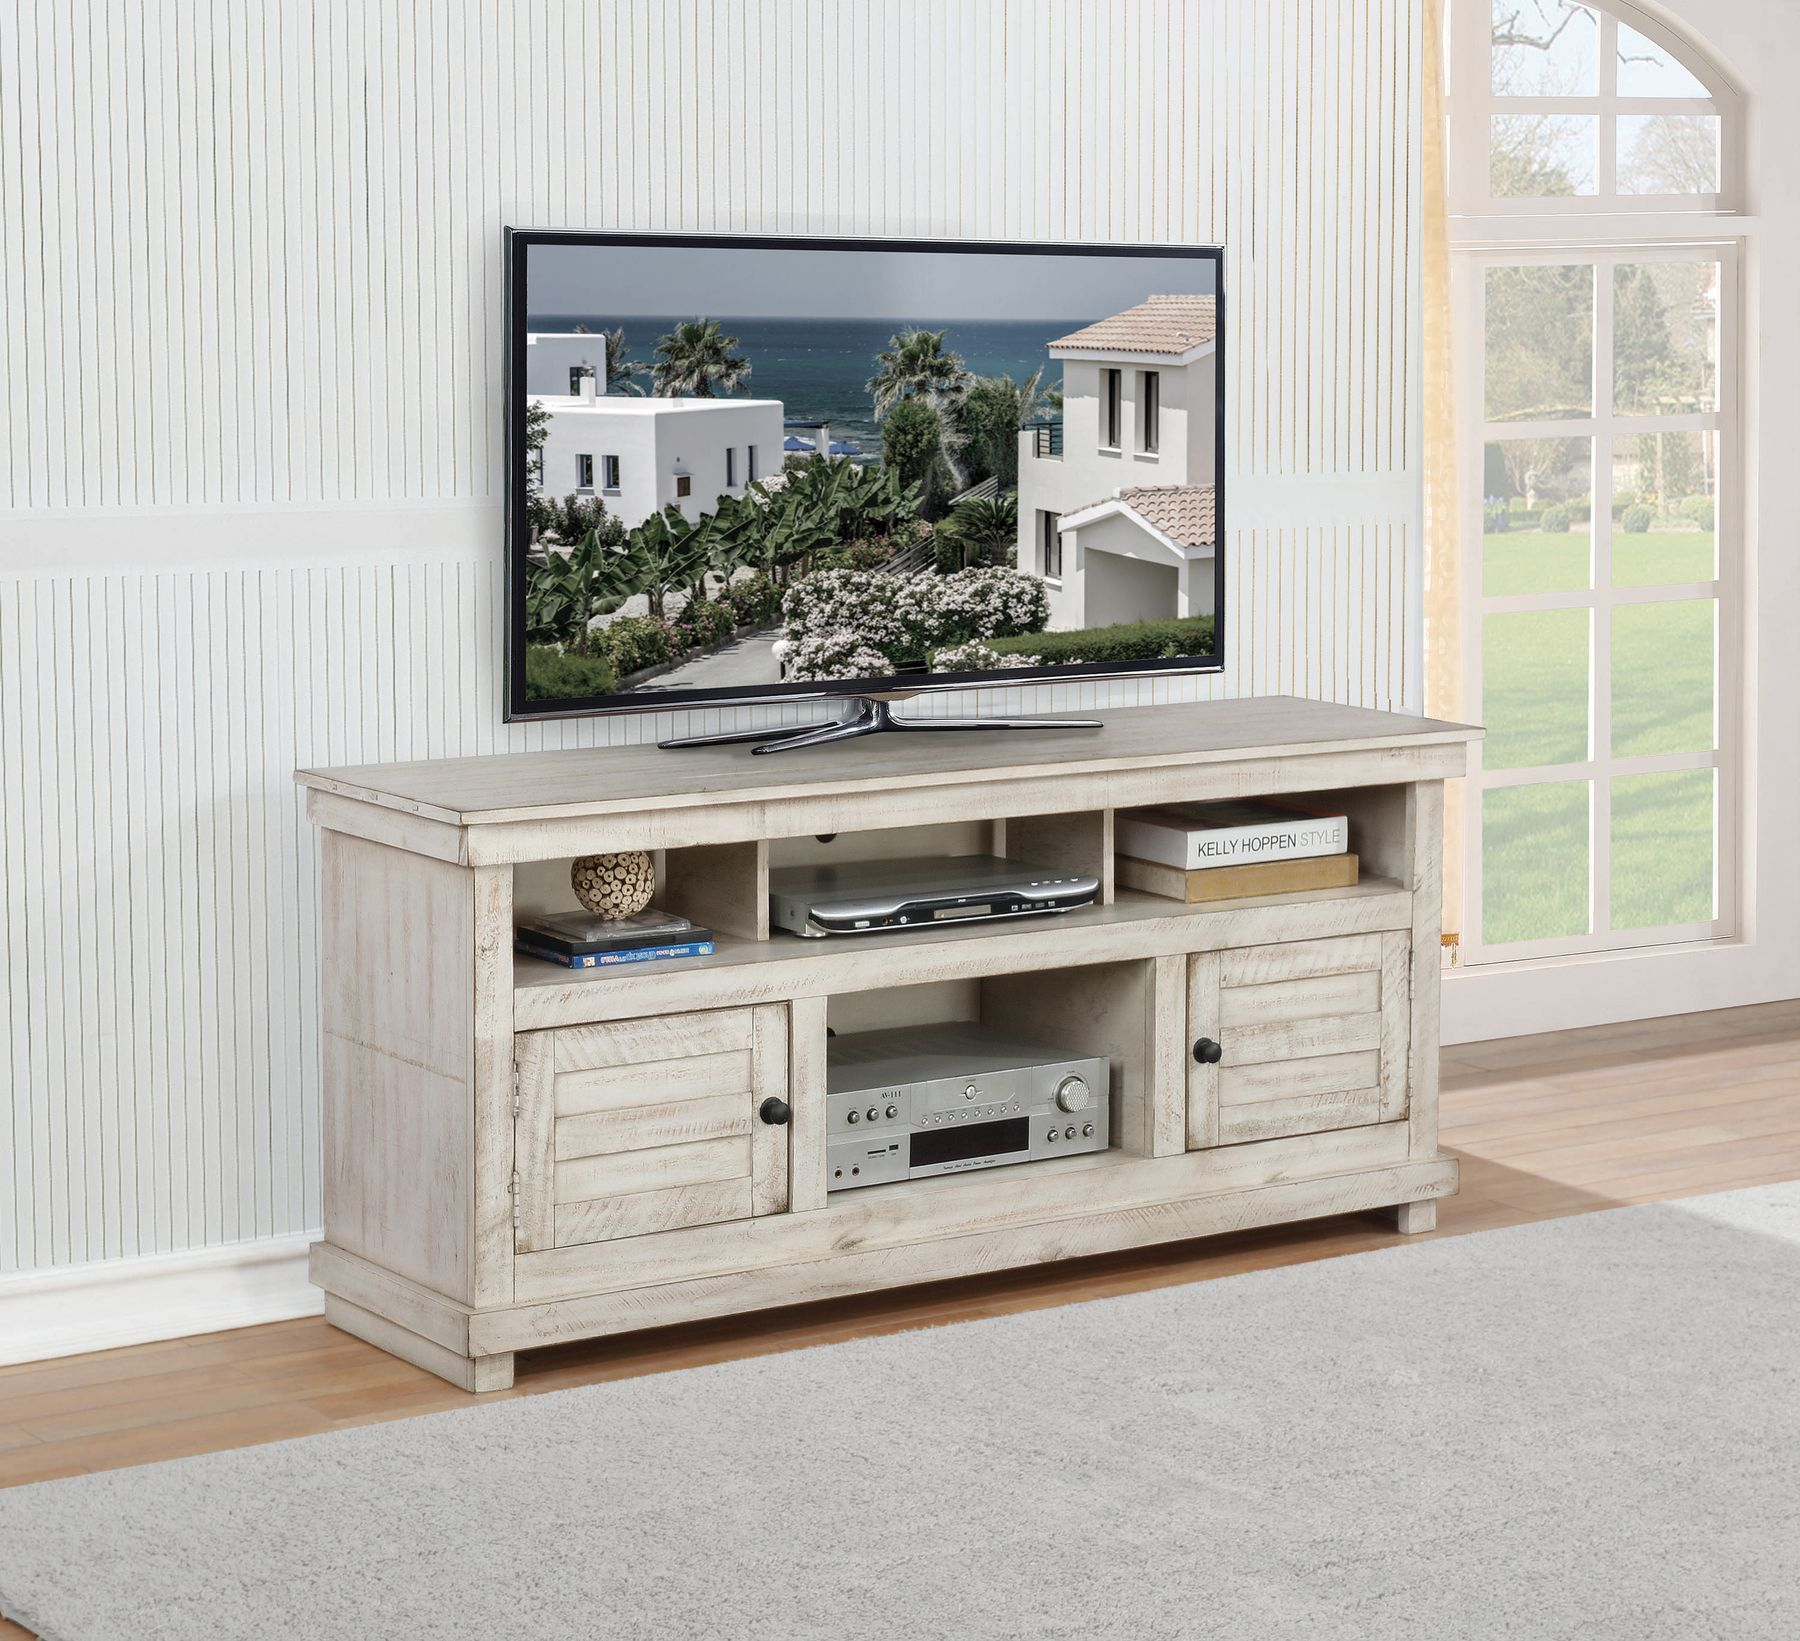 Cs512 Tv Stand 708512 Coaster Furniture Tv Stands Parks Furniture Furniture Tv Stand Console